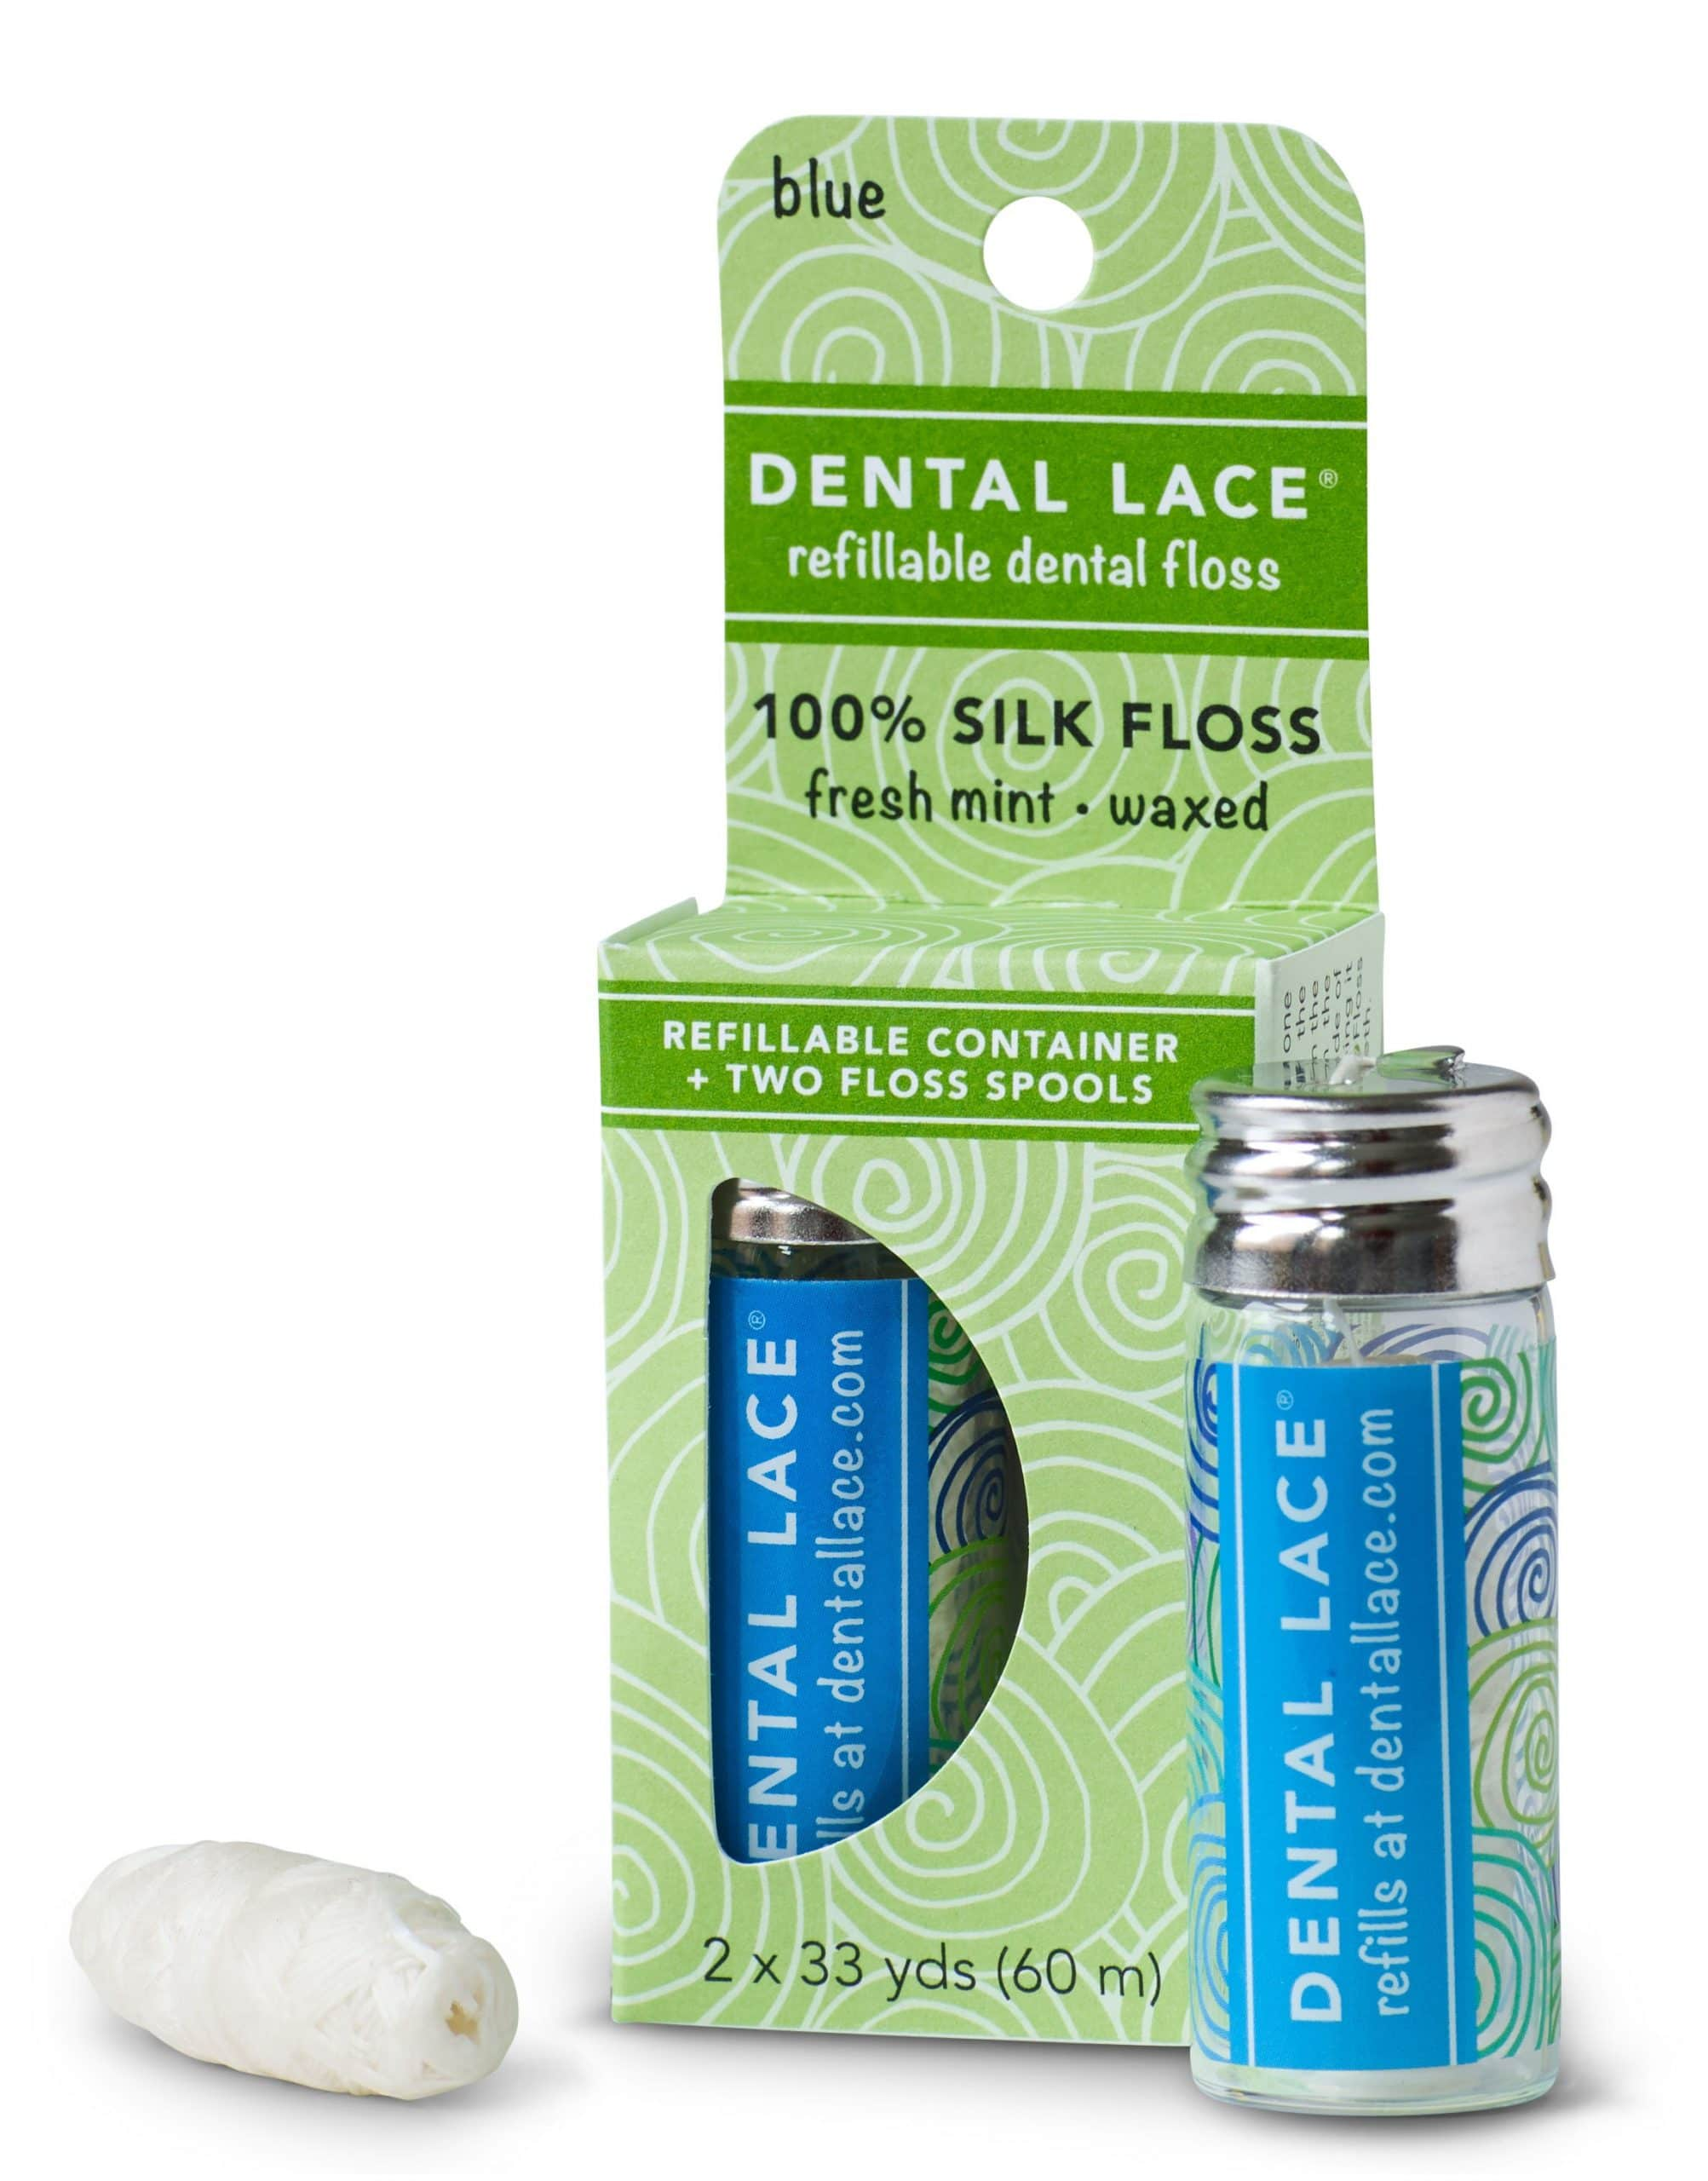 Biodegradable Dental Floss In Refillable Glass Dispenser